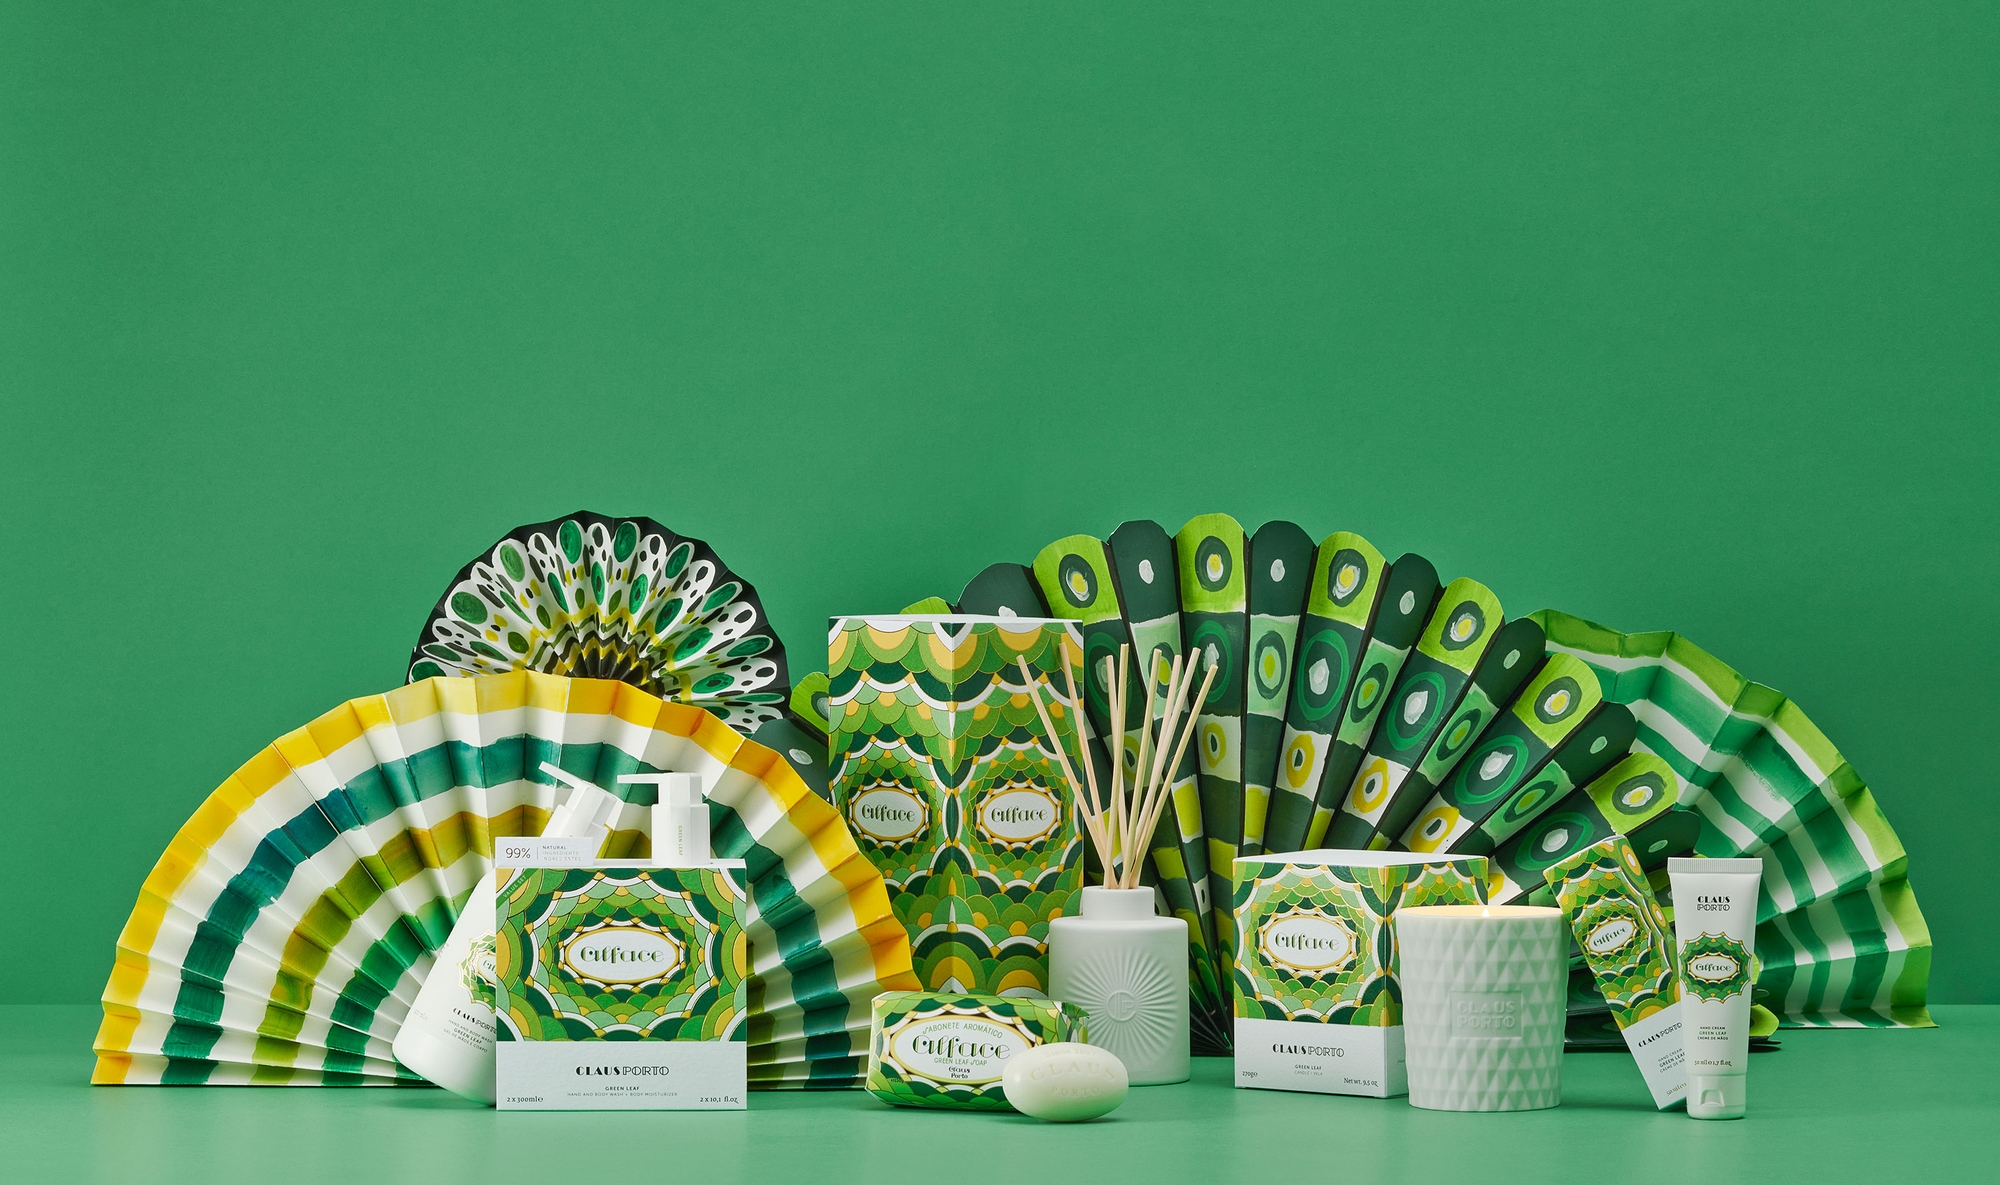 Alface Green Leaf Product Range of Bath and Body and Home Fragrances